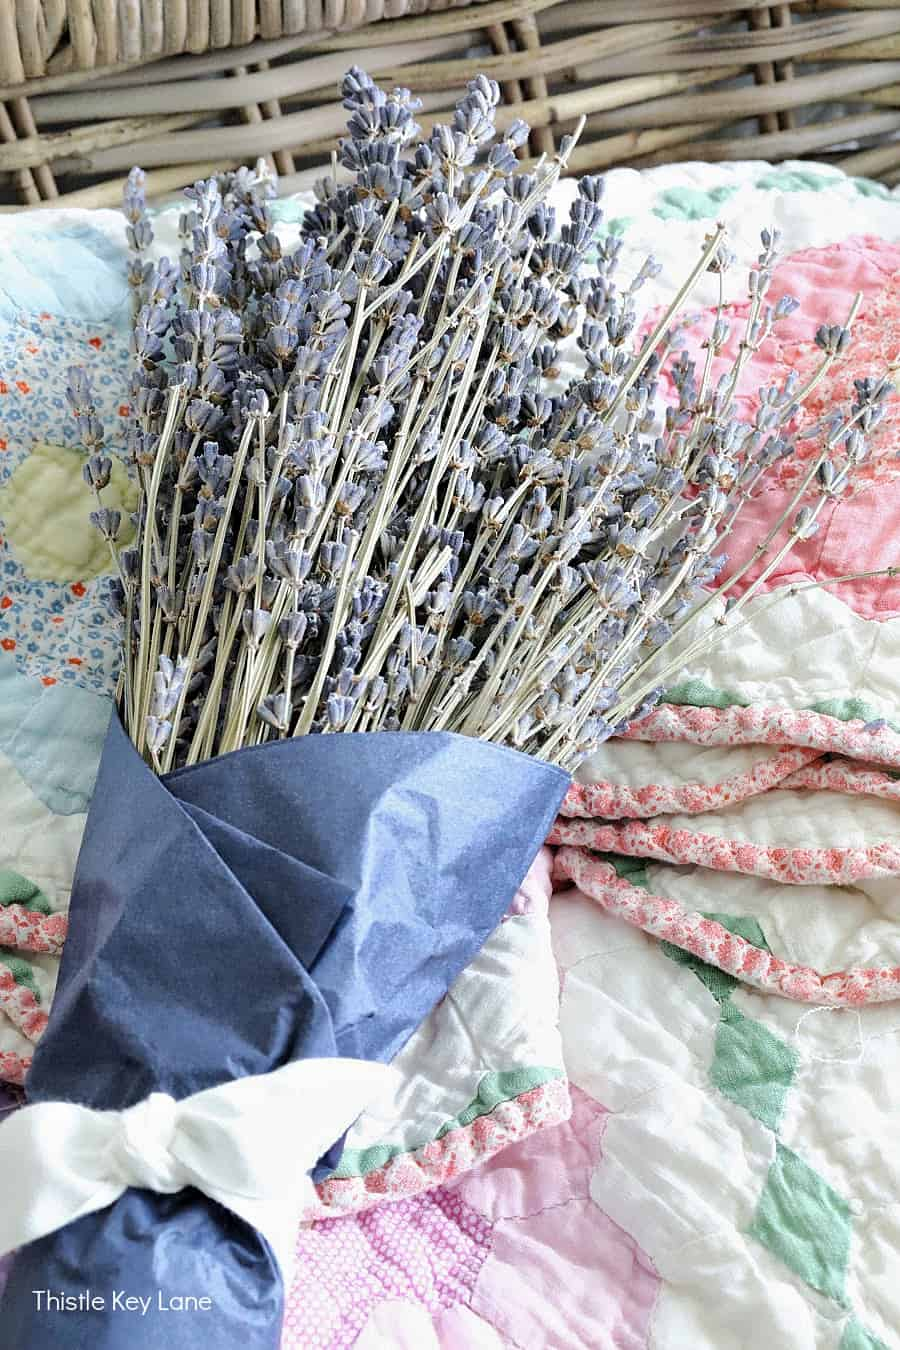 Bundle of dried lavender wrapped with blue paper. Summer Bedroom Updates And A Quilt Basket.